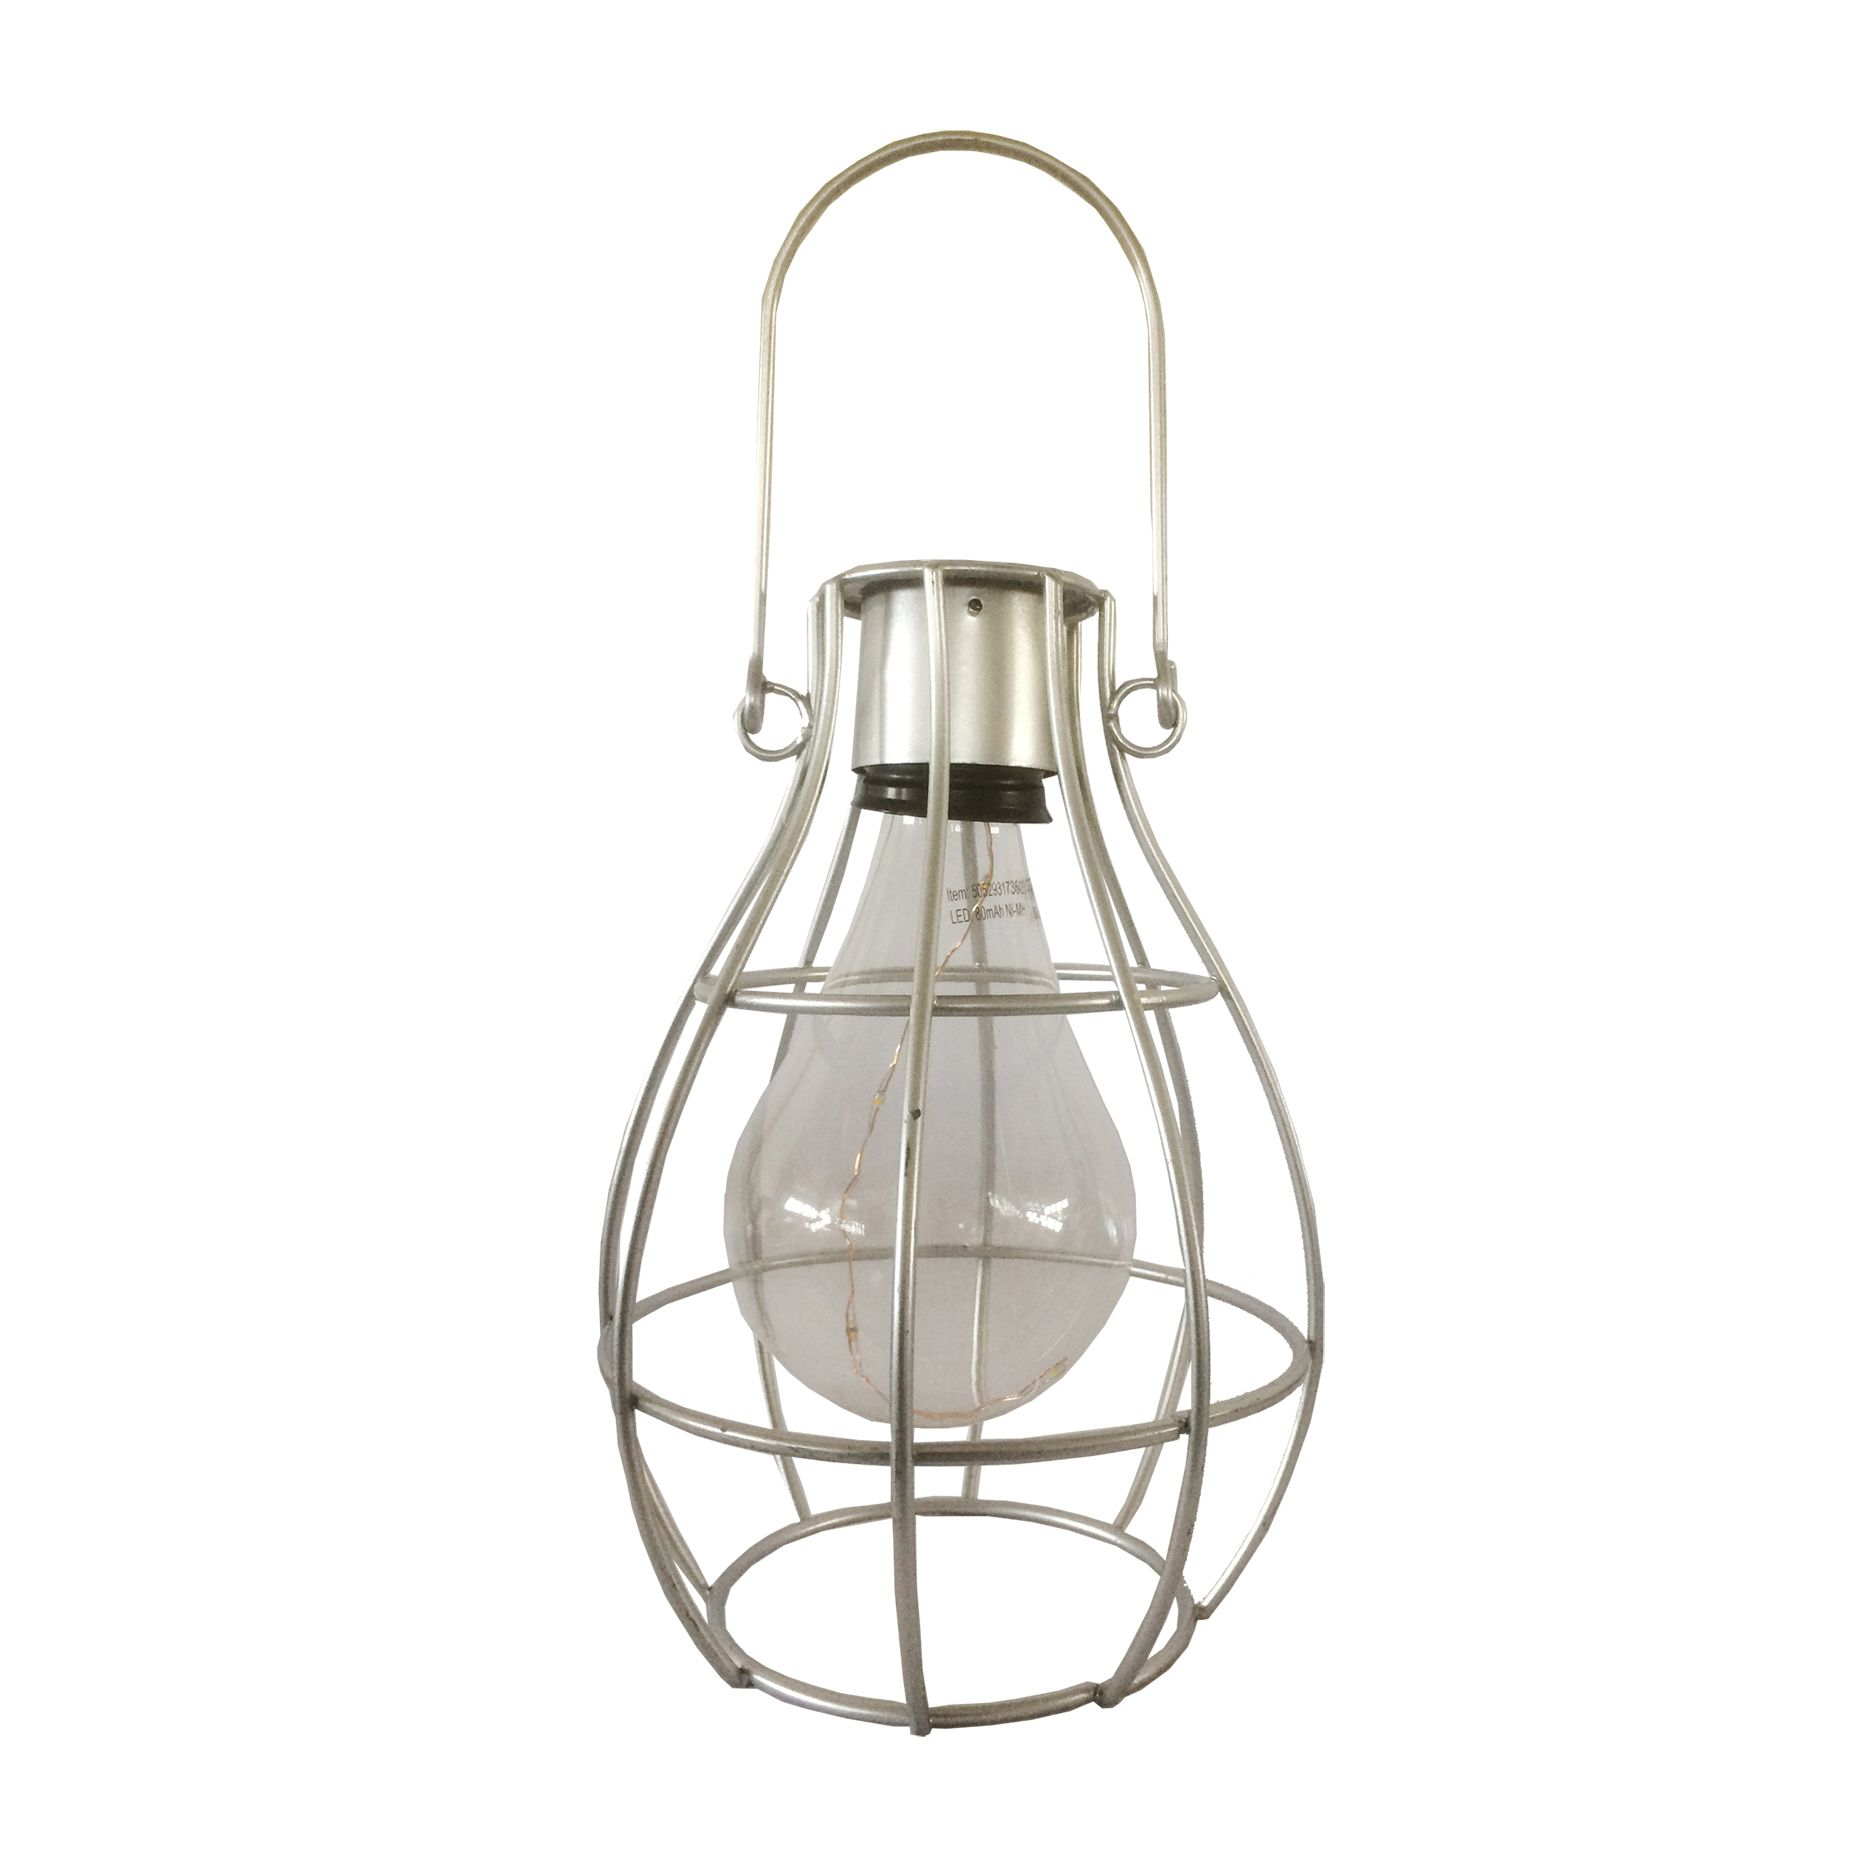 Solar Lights B Q: Blooma Ellopos Silver Effect Caged Solar Powered LED